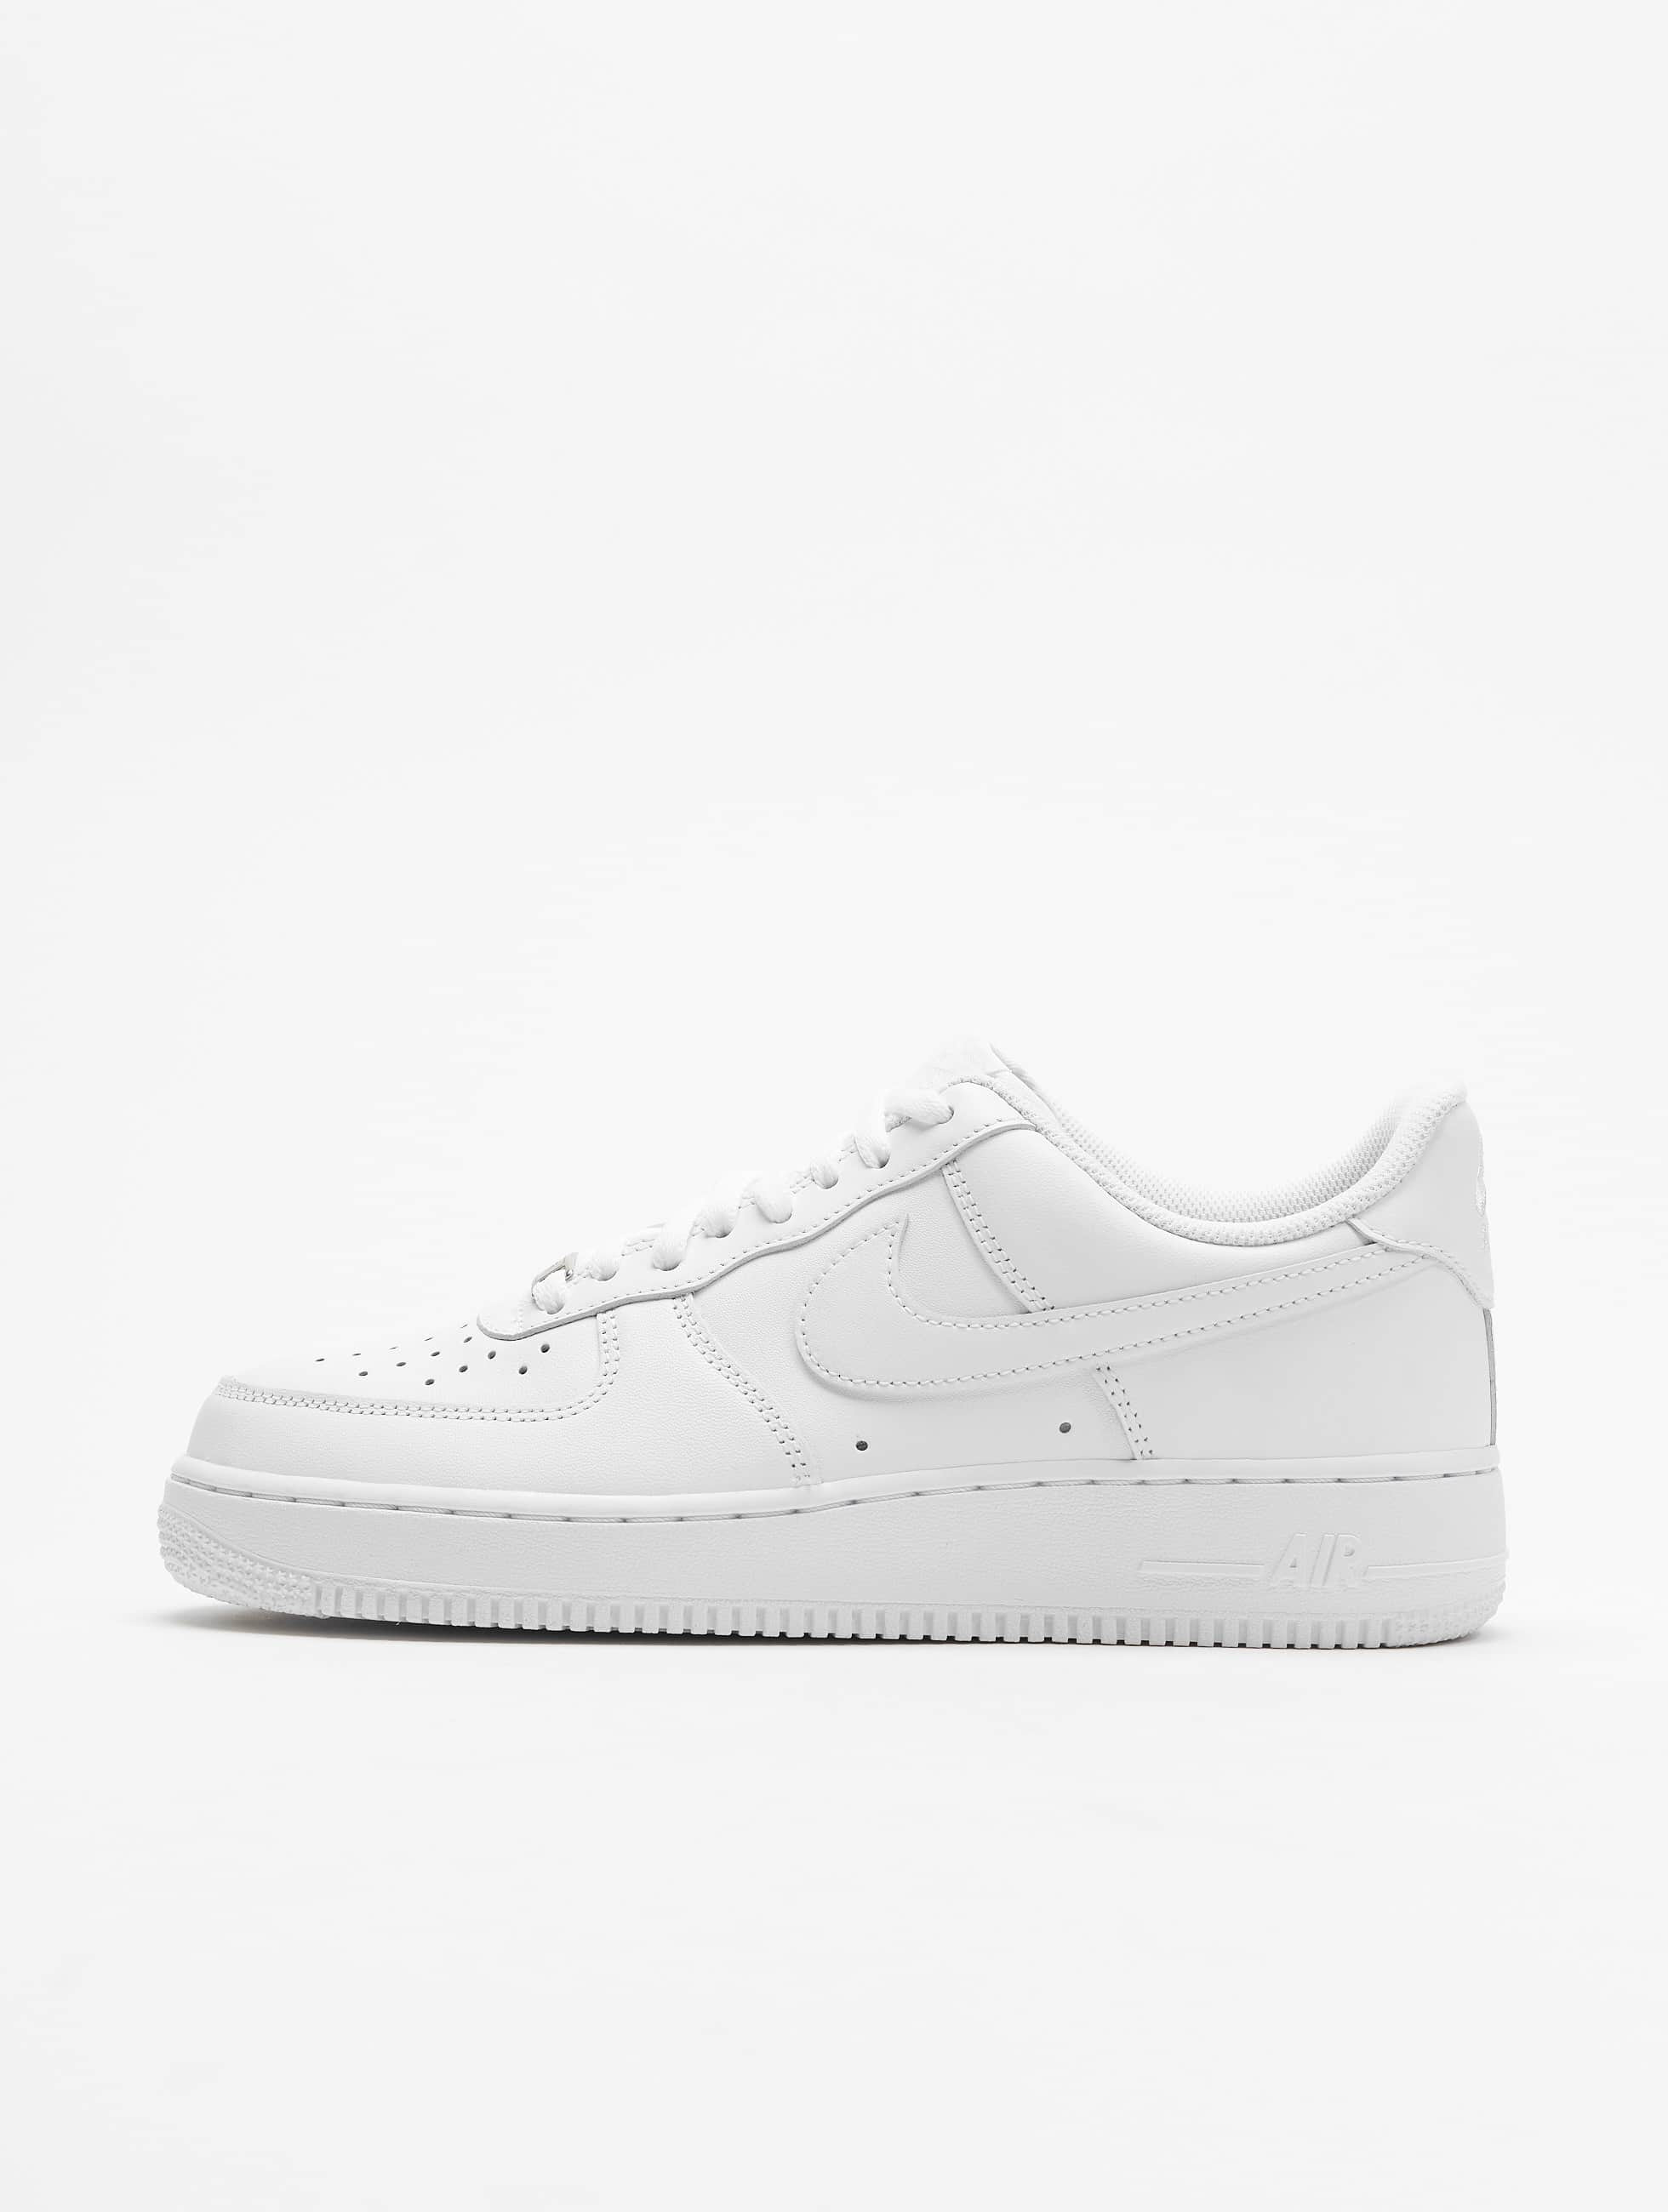 Sneaker Weiß Nike Air Force 1 07 Basketball Shoes White White